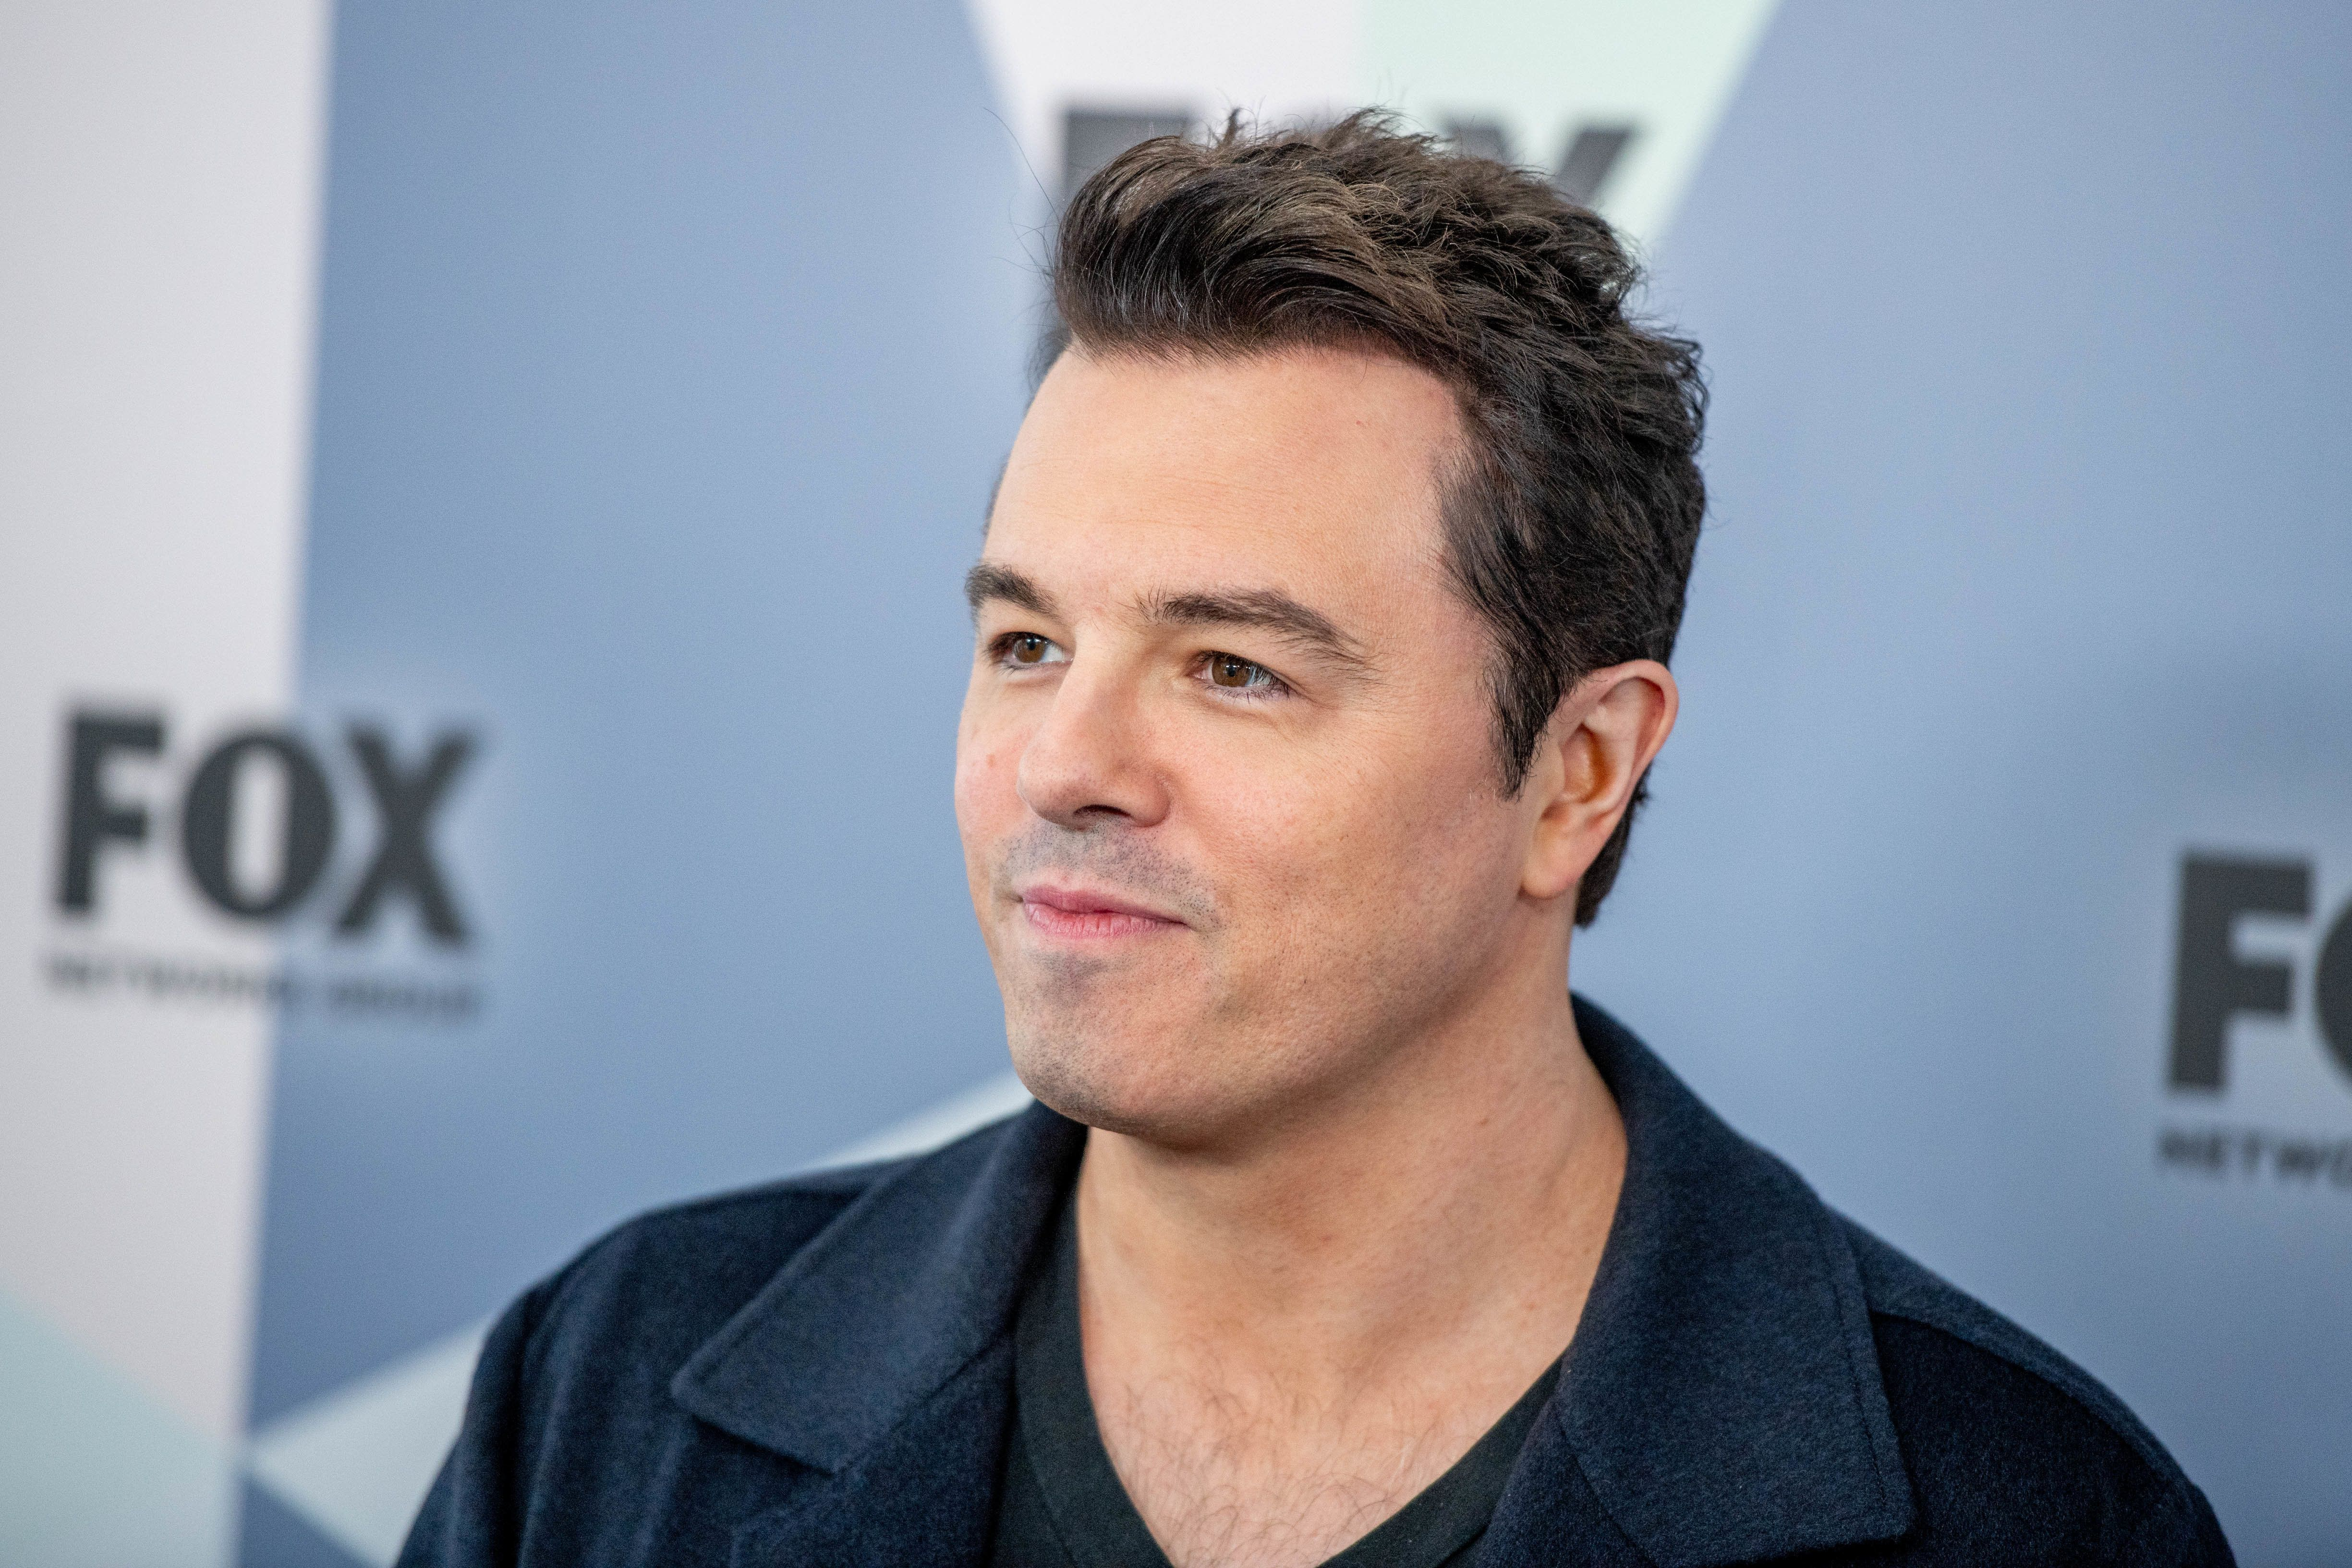 Seth MacFarlane attends a Fox network event in New York City on May 14.